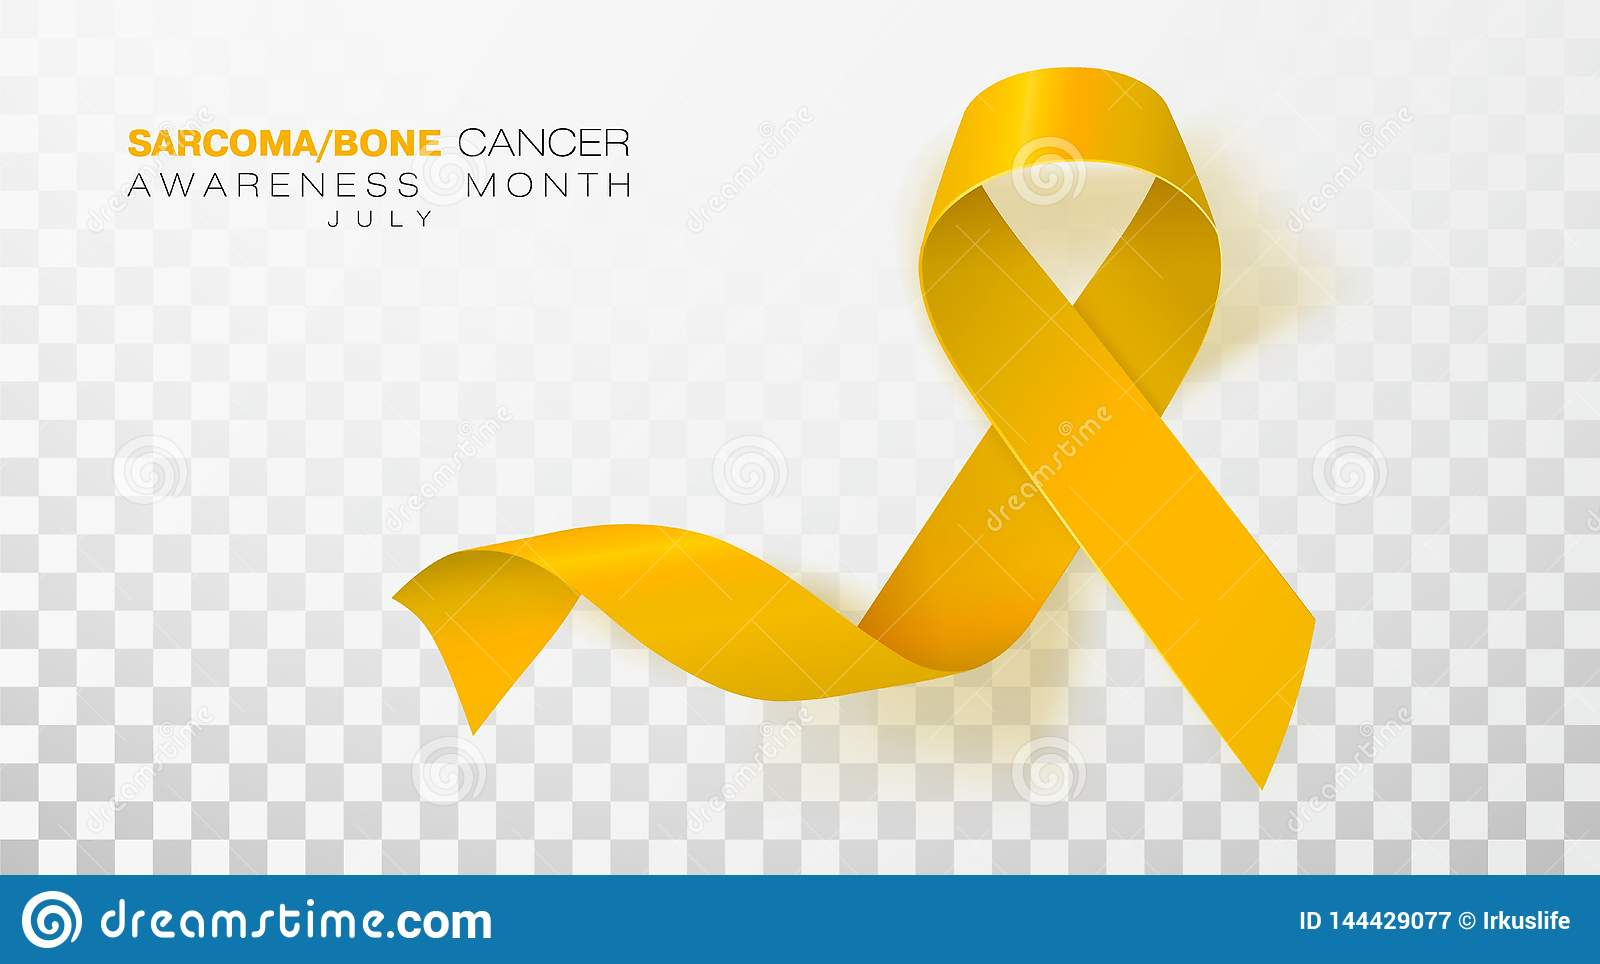 sarcoma cancer awareness week 2020 viermi și unde să i trateze